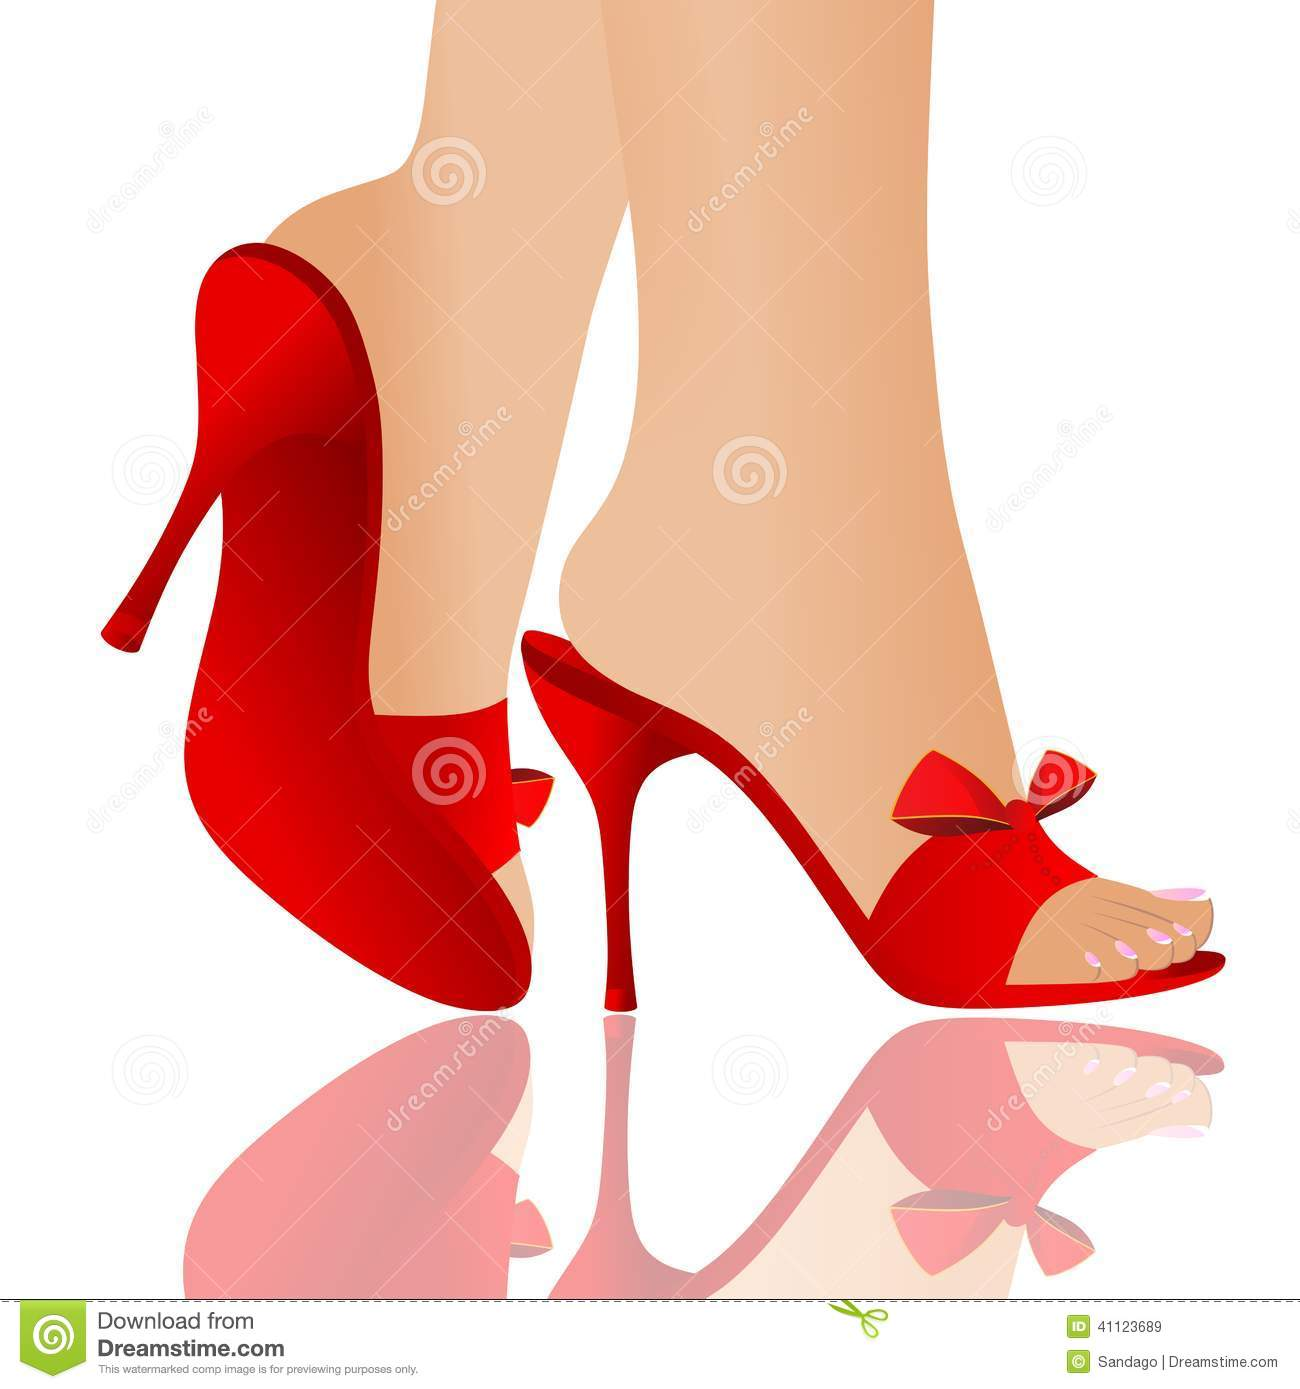 Vector illustration of red shoes,beautiful legs and reflection